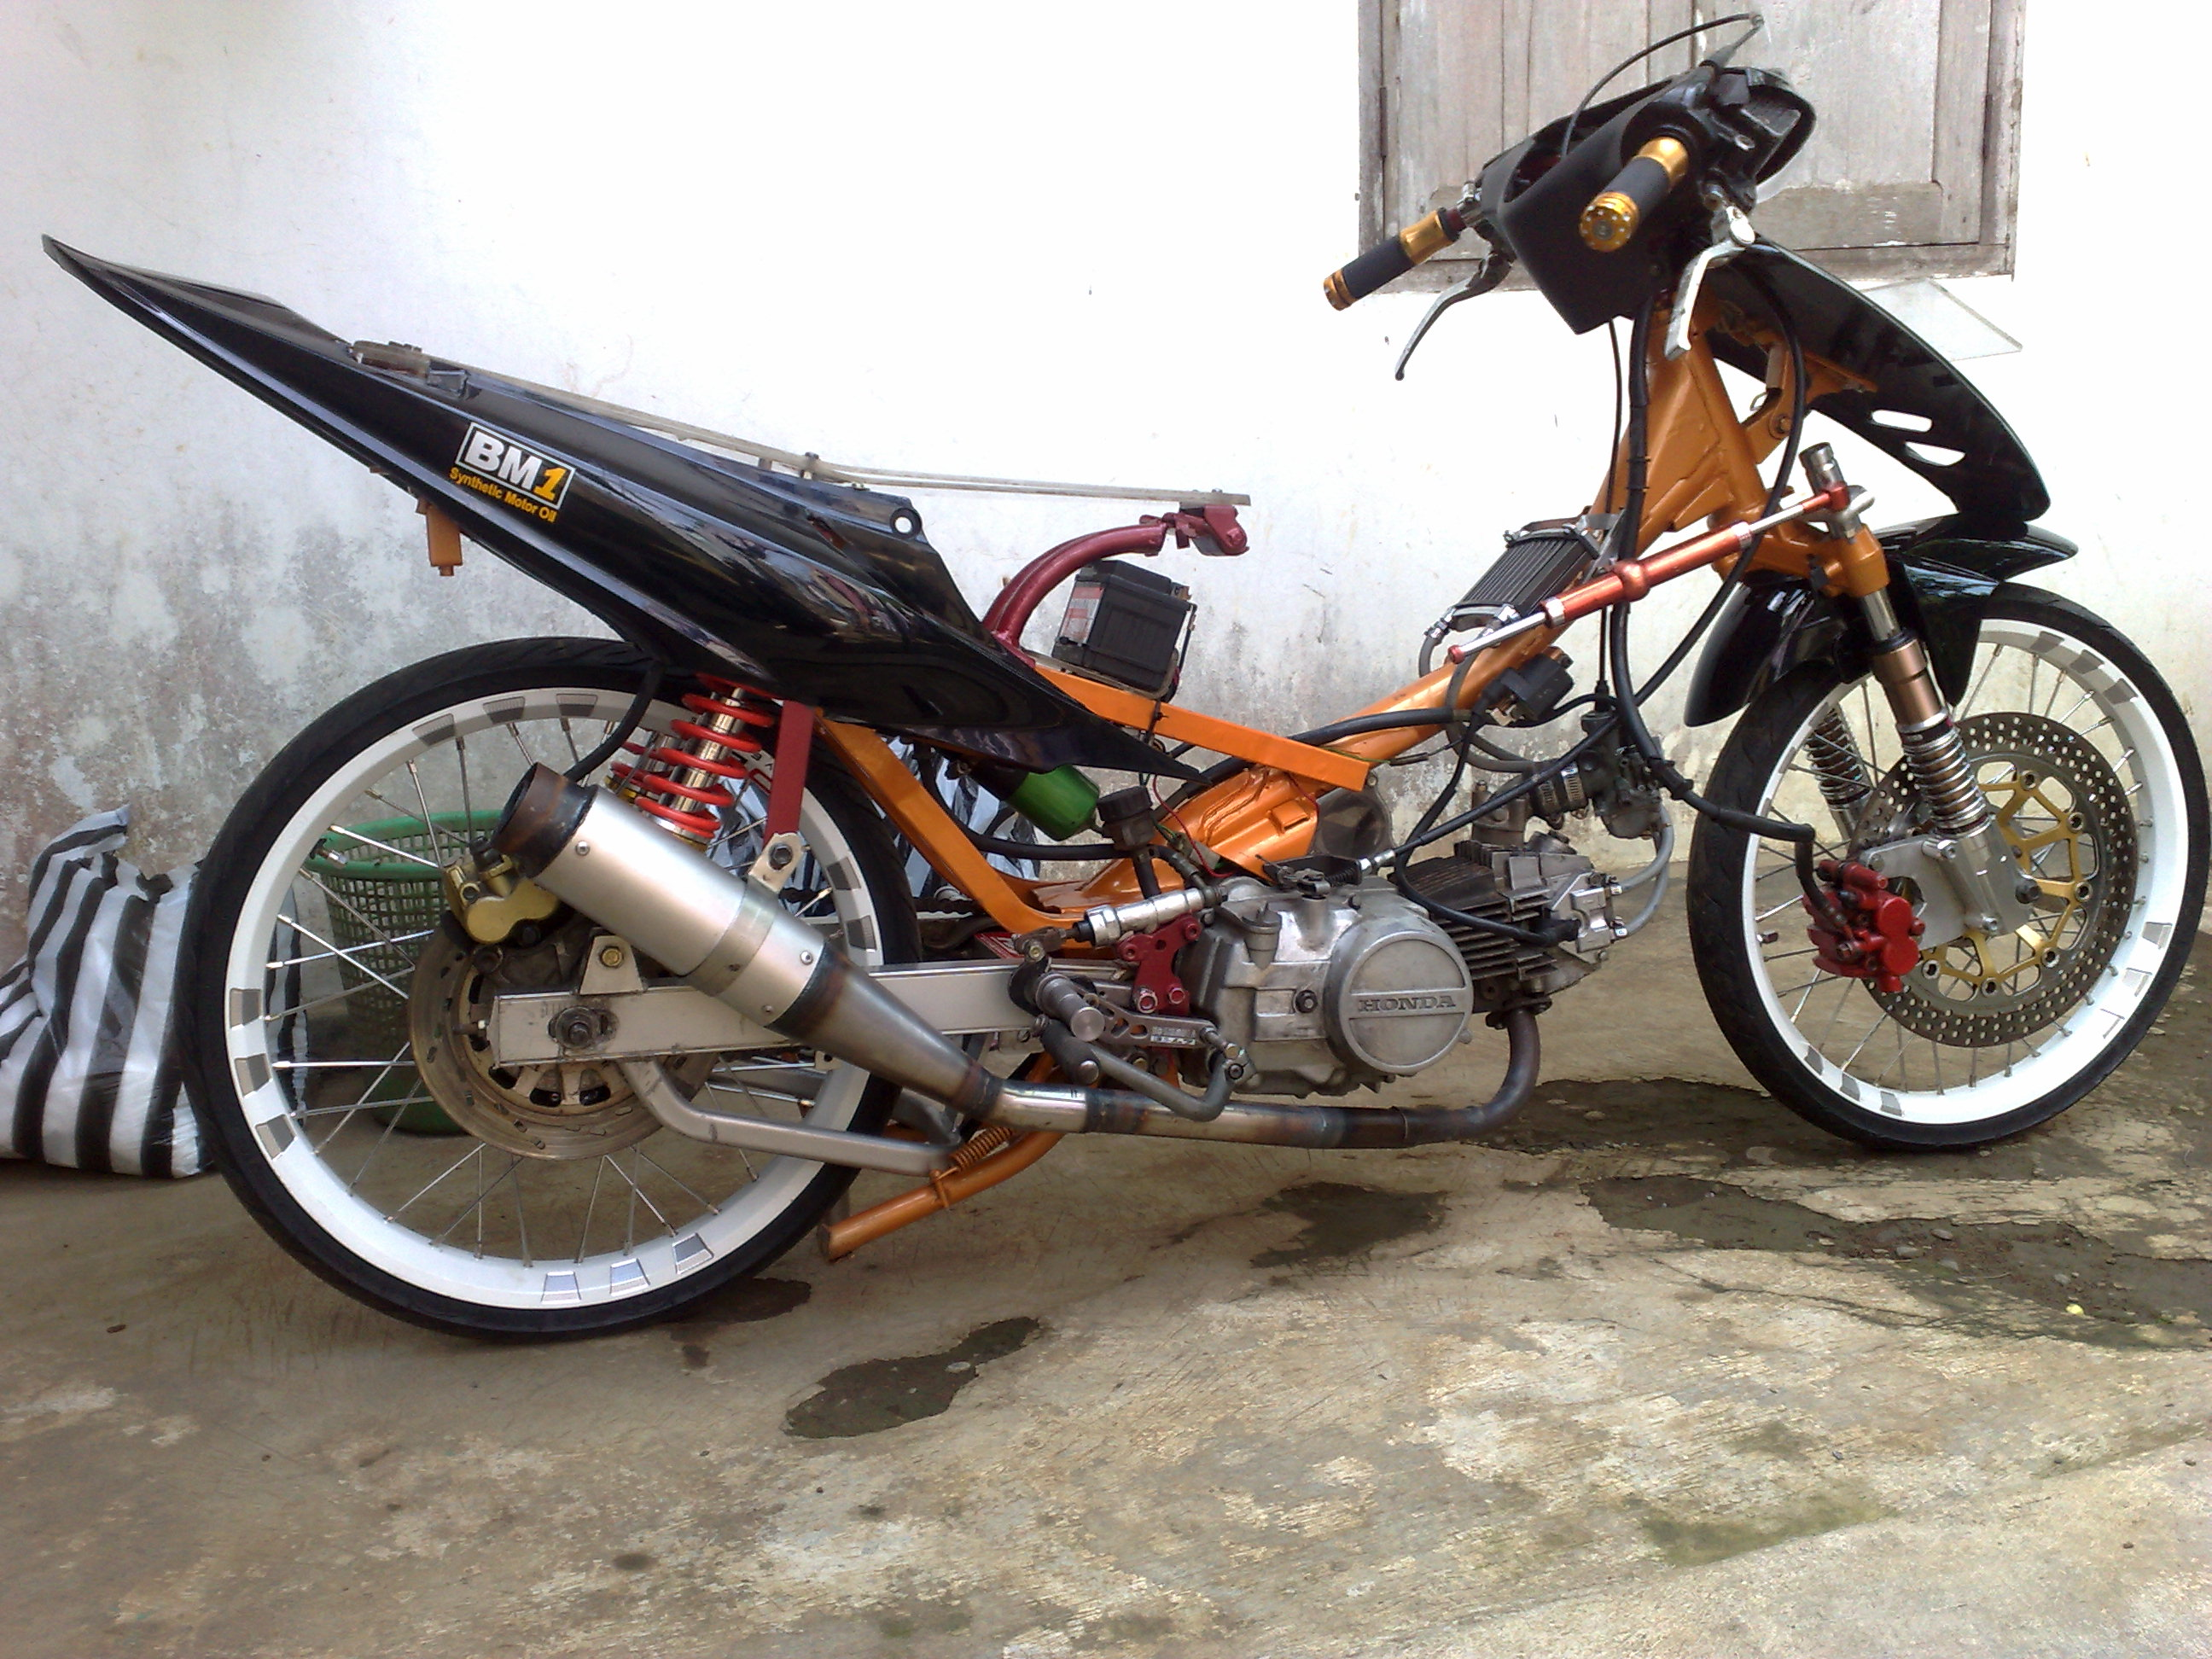 modifikasi motor supra, modifikasi motor honda, modifikasi motor drag